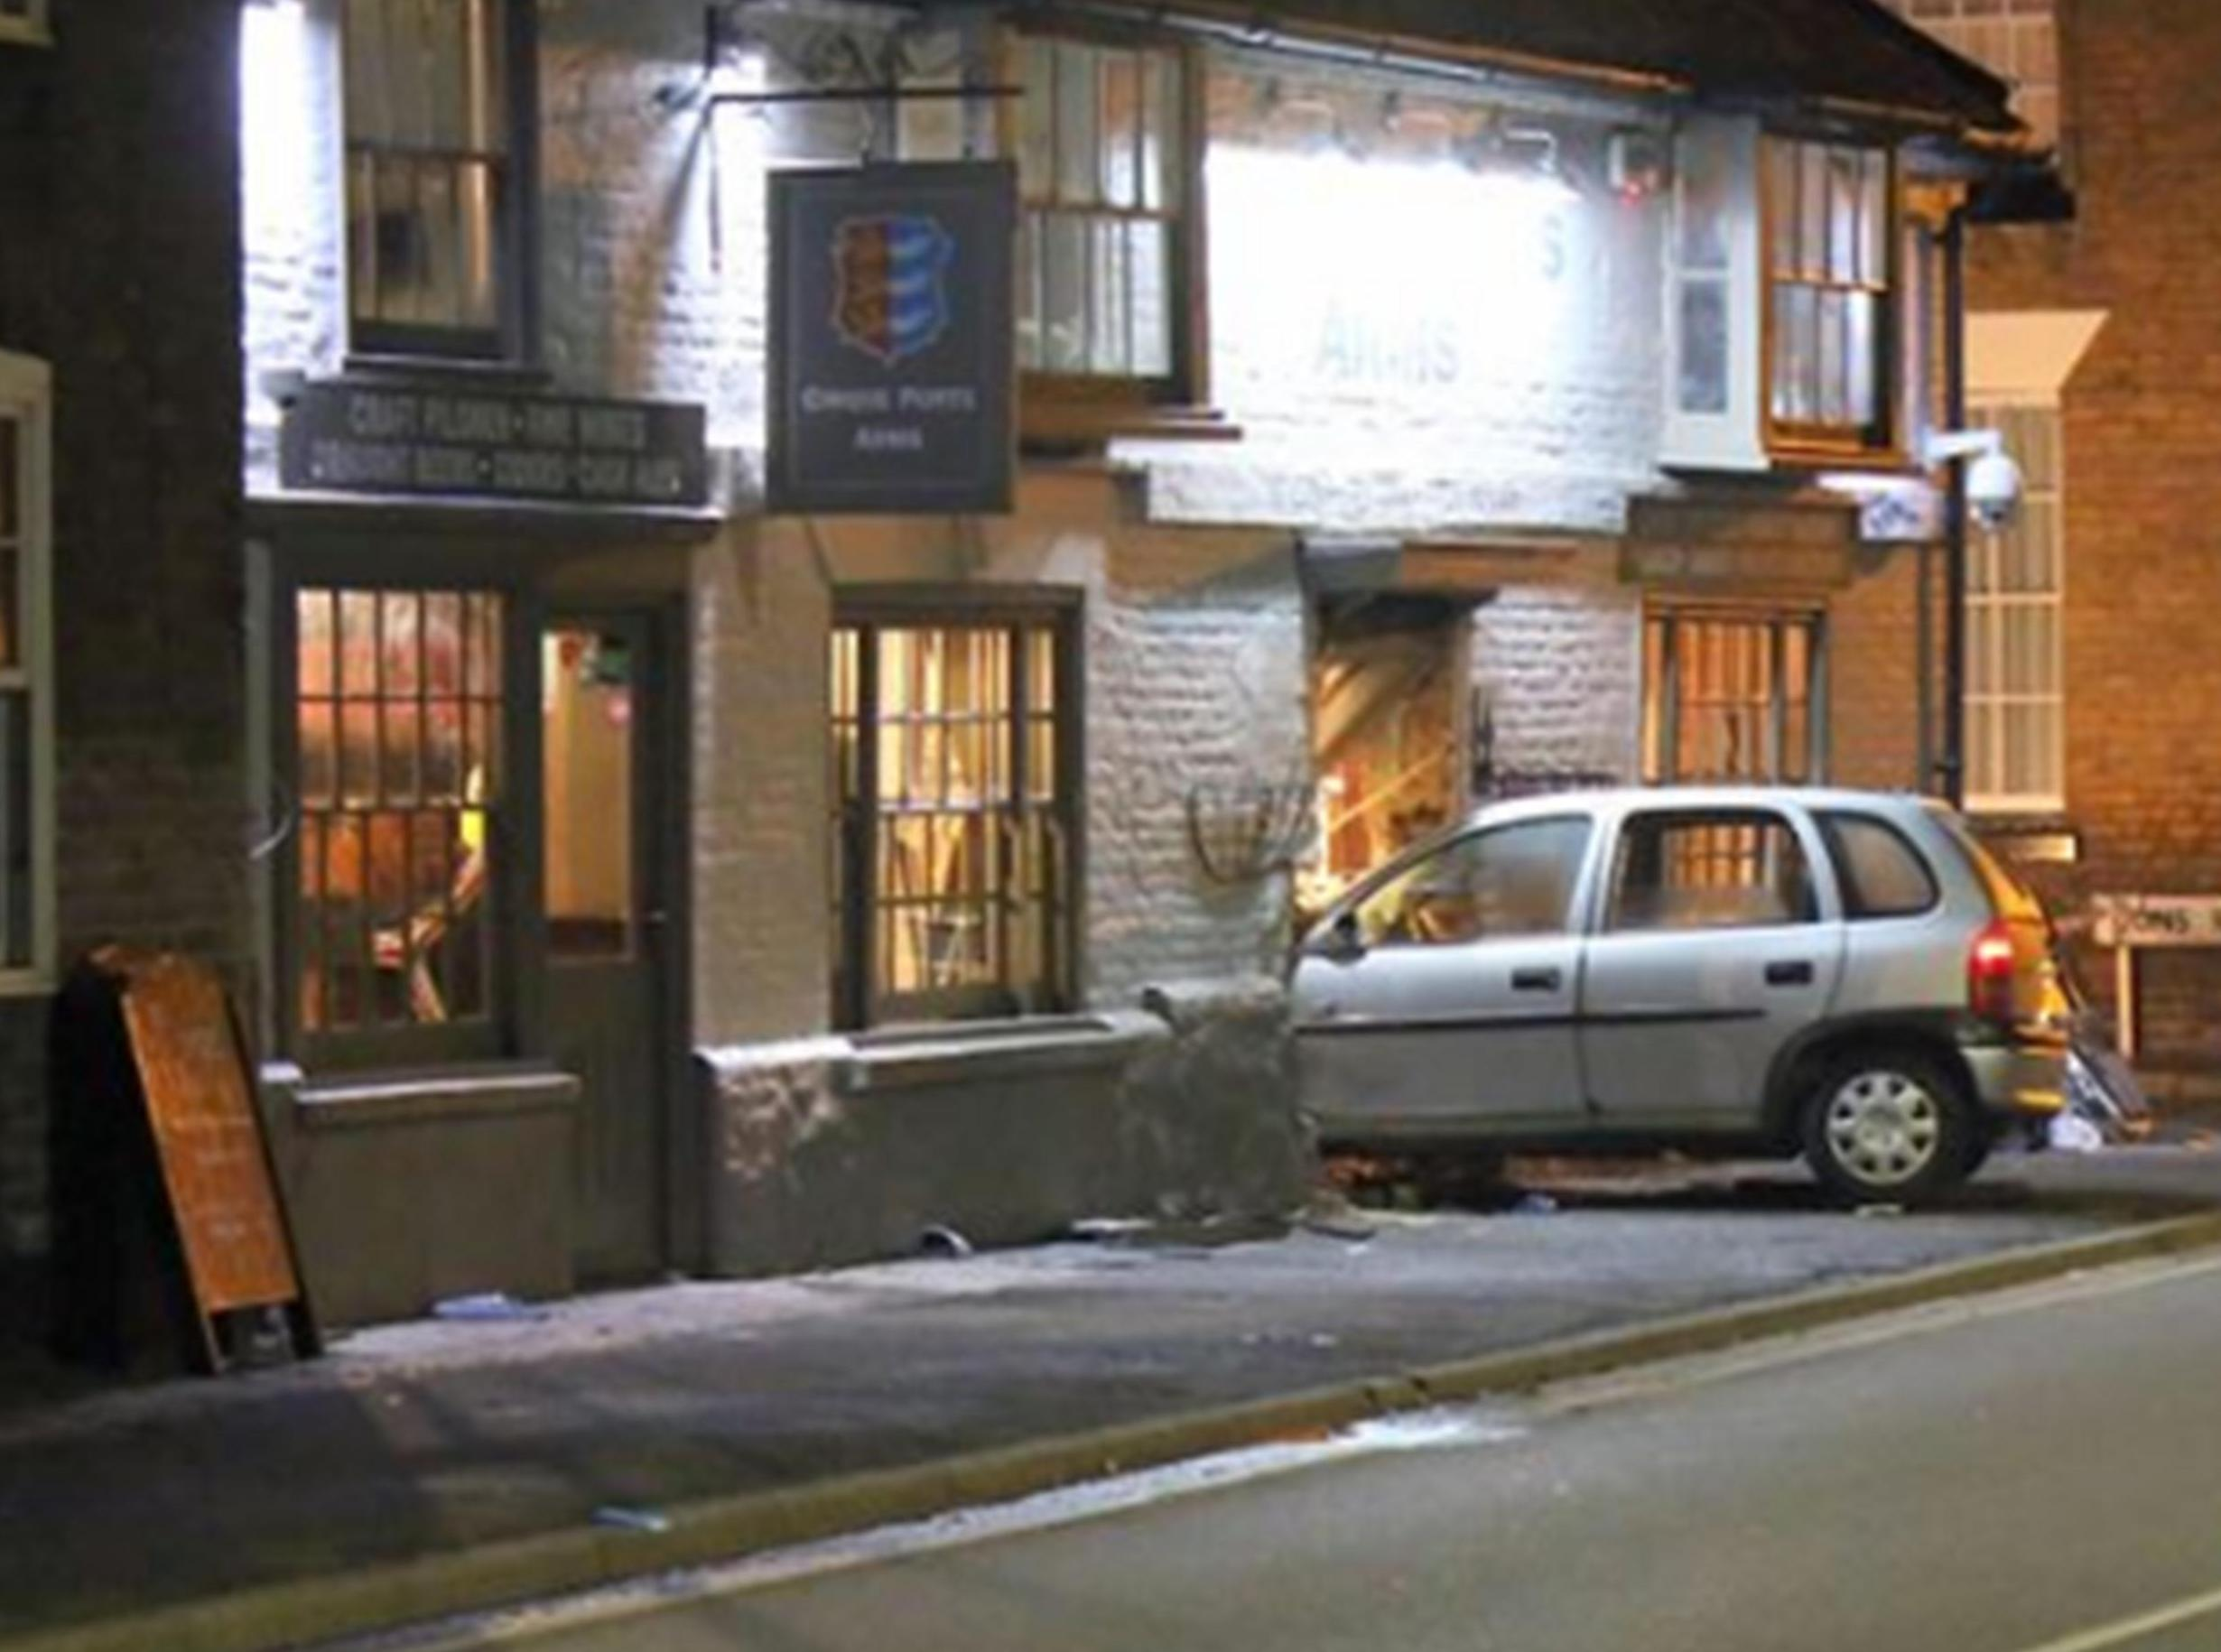 Update :Business as usual despite car crashing into historic Marsh pub